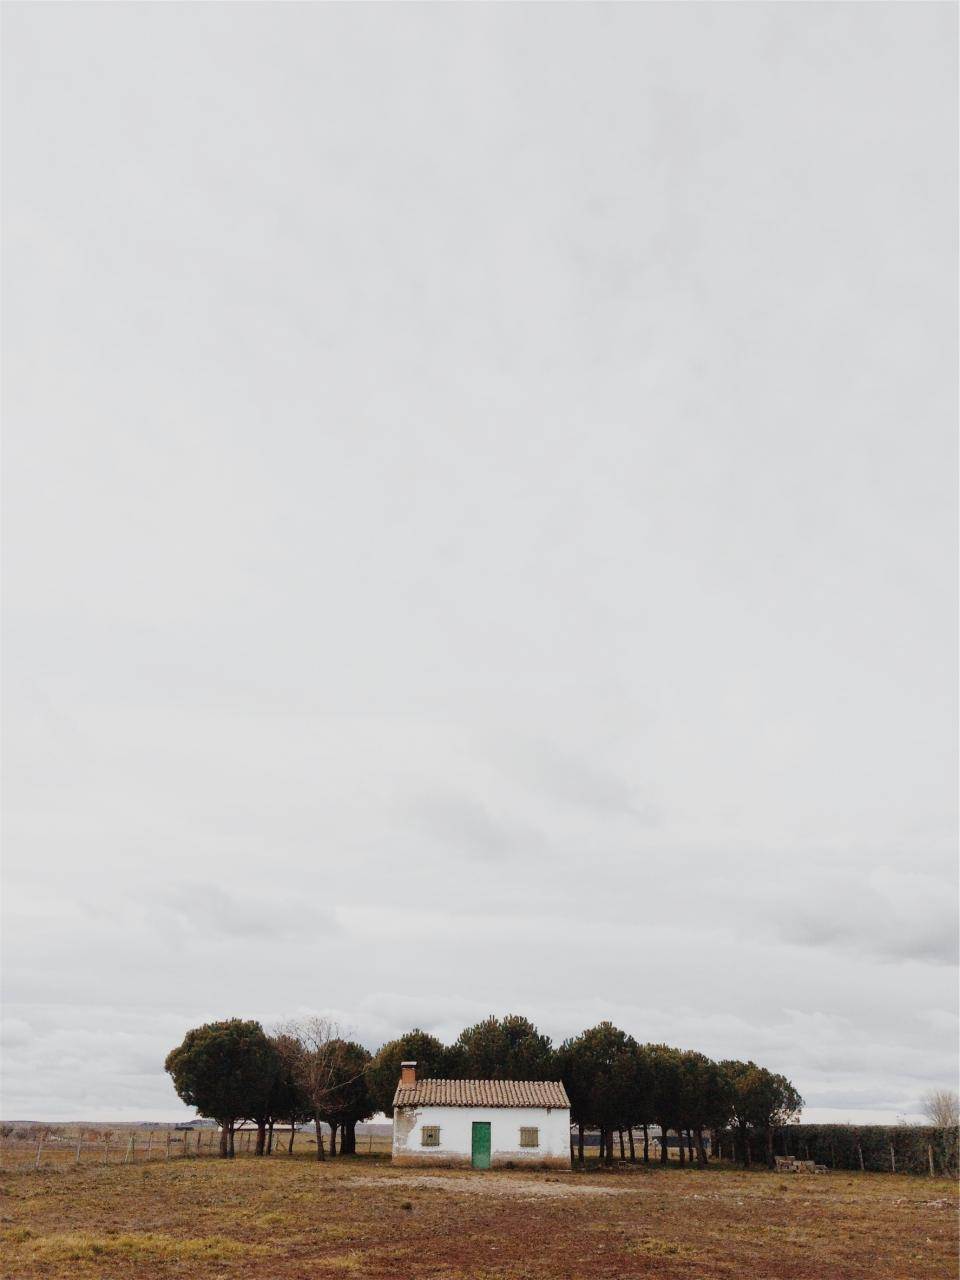 rural house dirt trees grass fence country grey sky cloudy